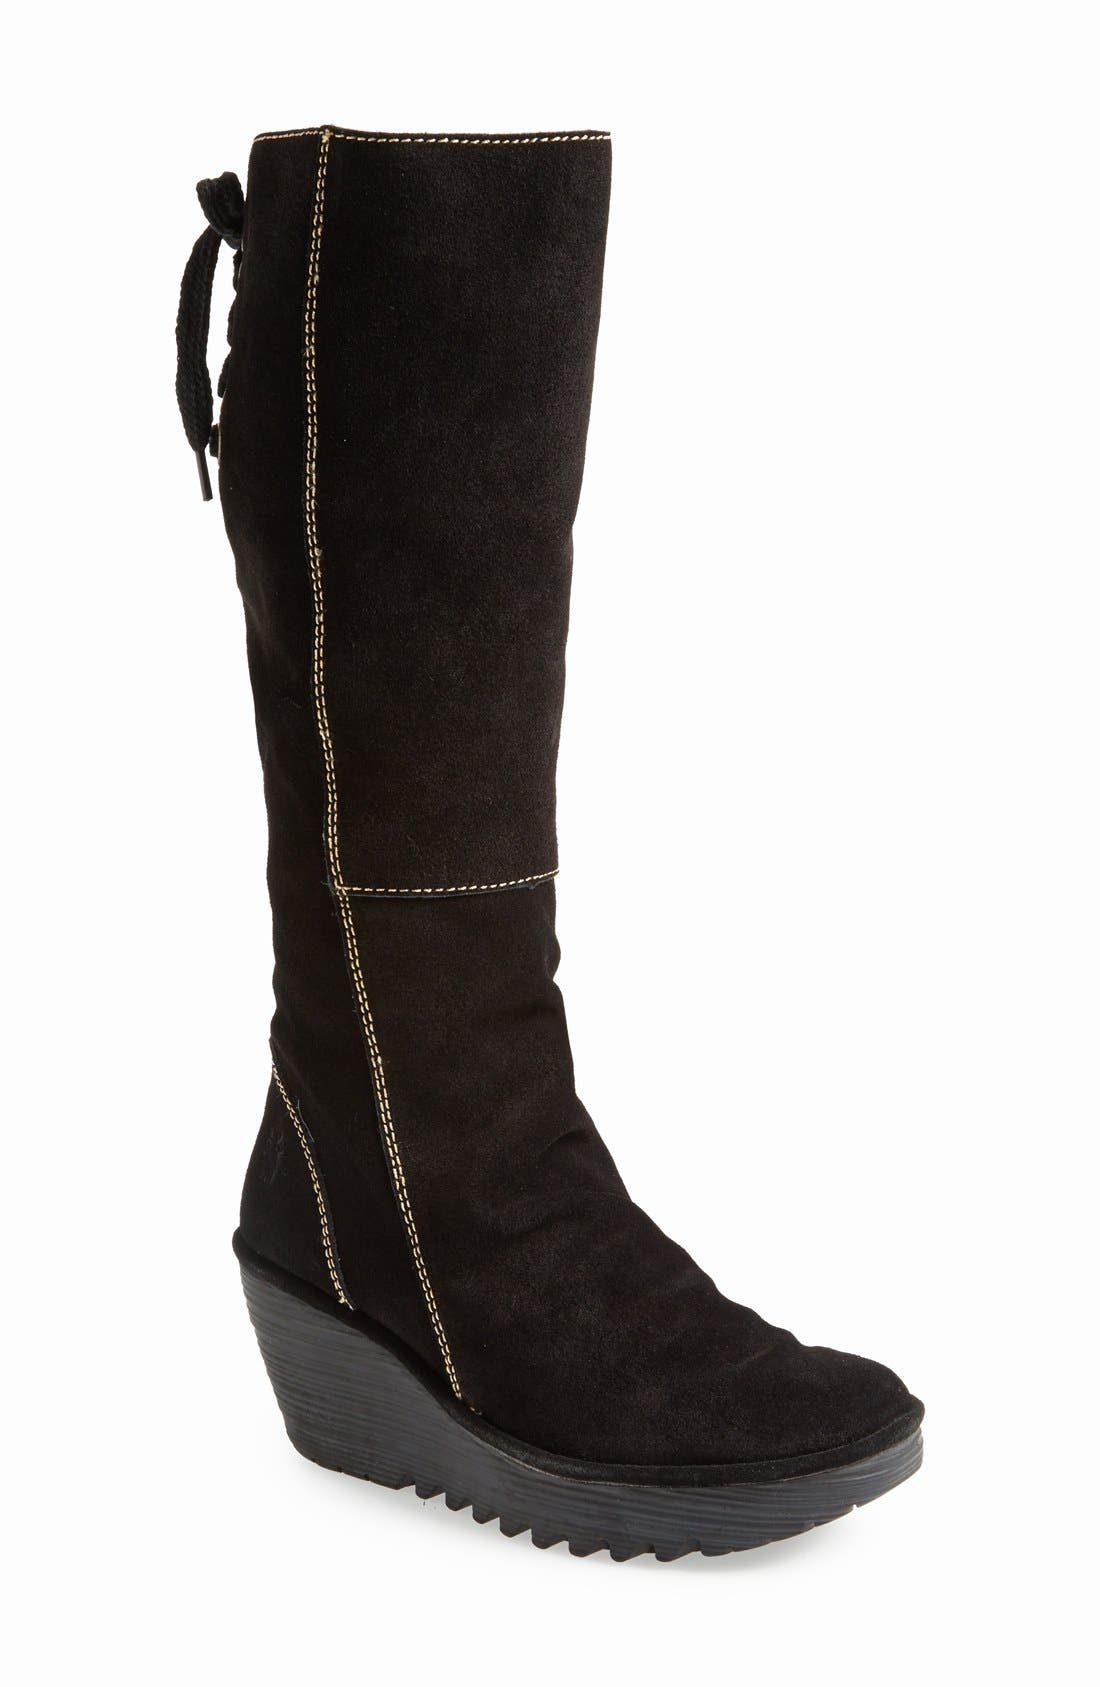 Alternate Image 1 Selected - Fly London 'Yust' Knee High Platform Wedge Boot (Women)